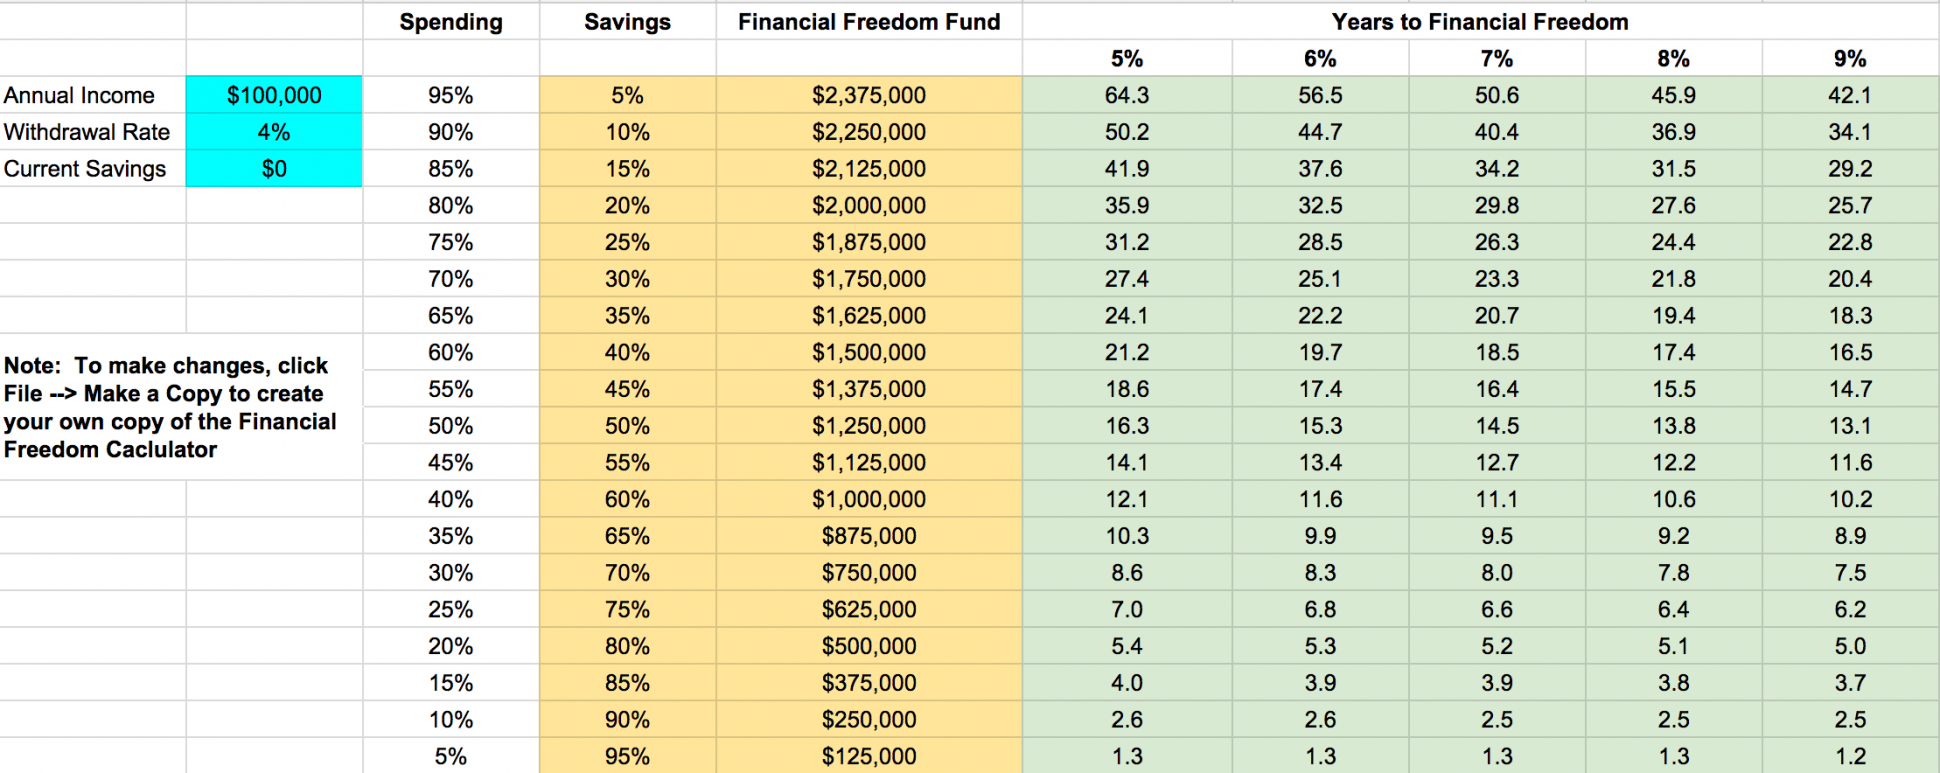 Retirement Calculator Spreadsheets Throughout Simple Retirement Calculator Spreadsheet  Homebiz4U2Profit